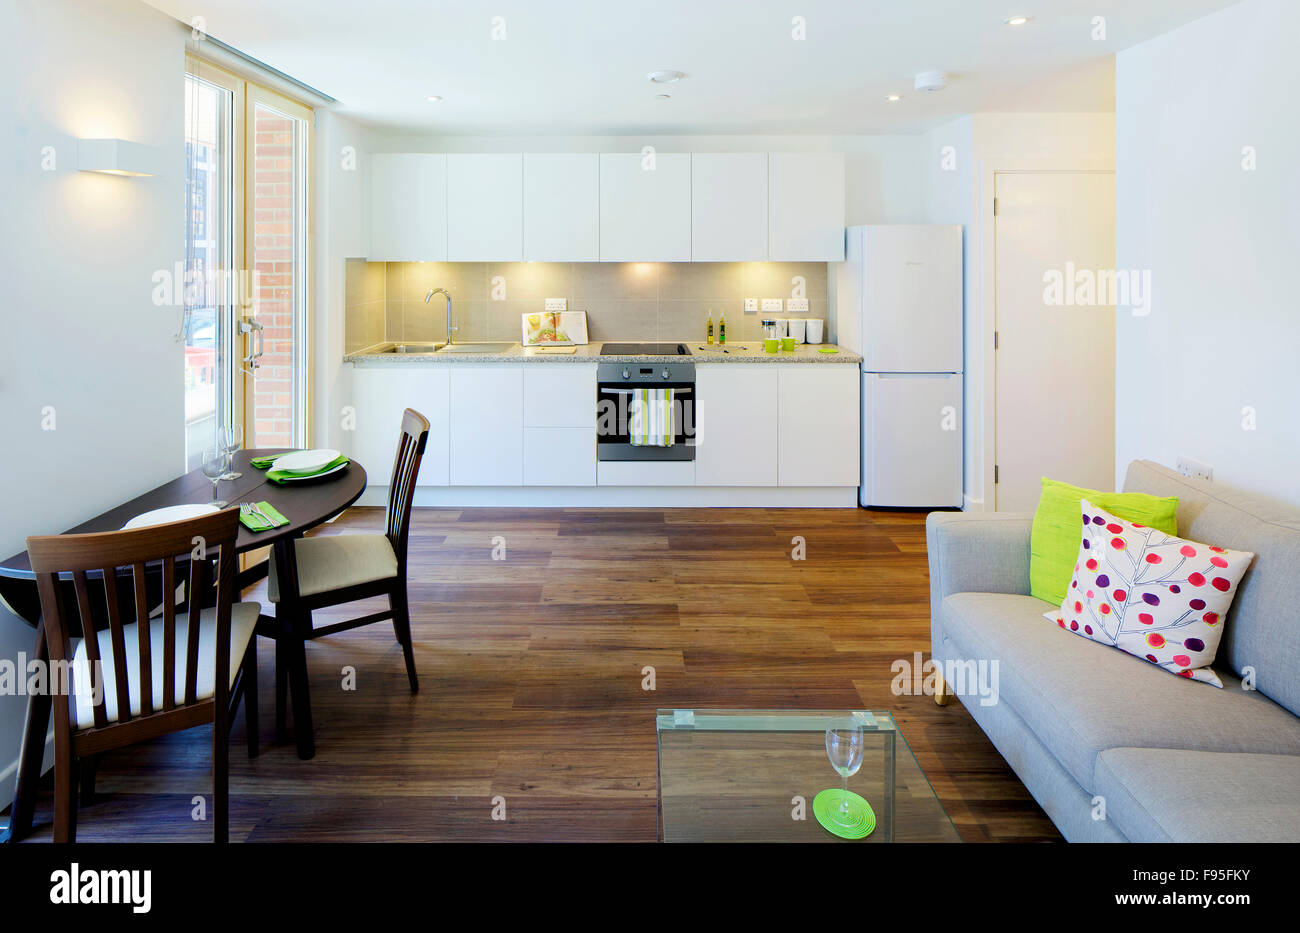 One church square london uk view of an open plan kitchen and living room modern interior white kitchen unit wood floors and furniture all in view